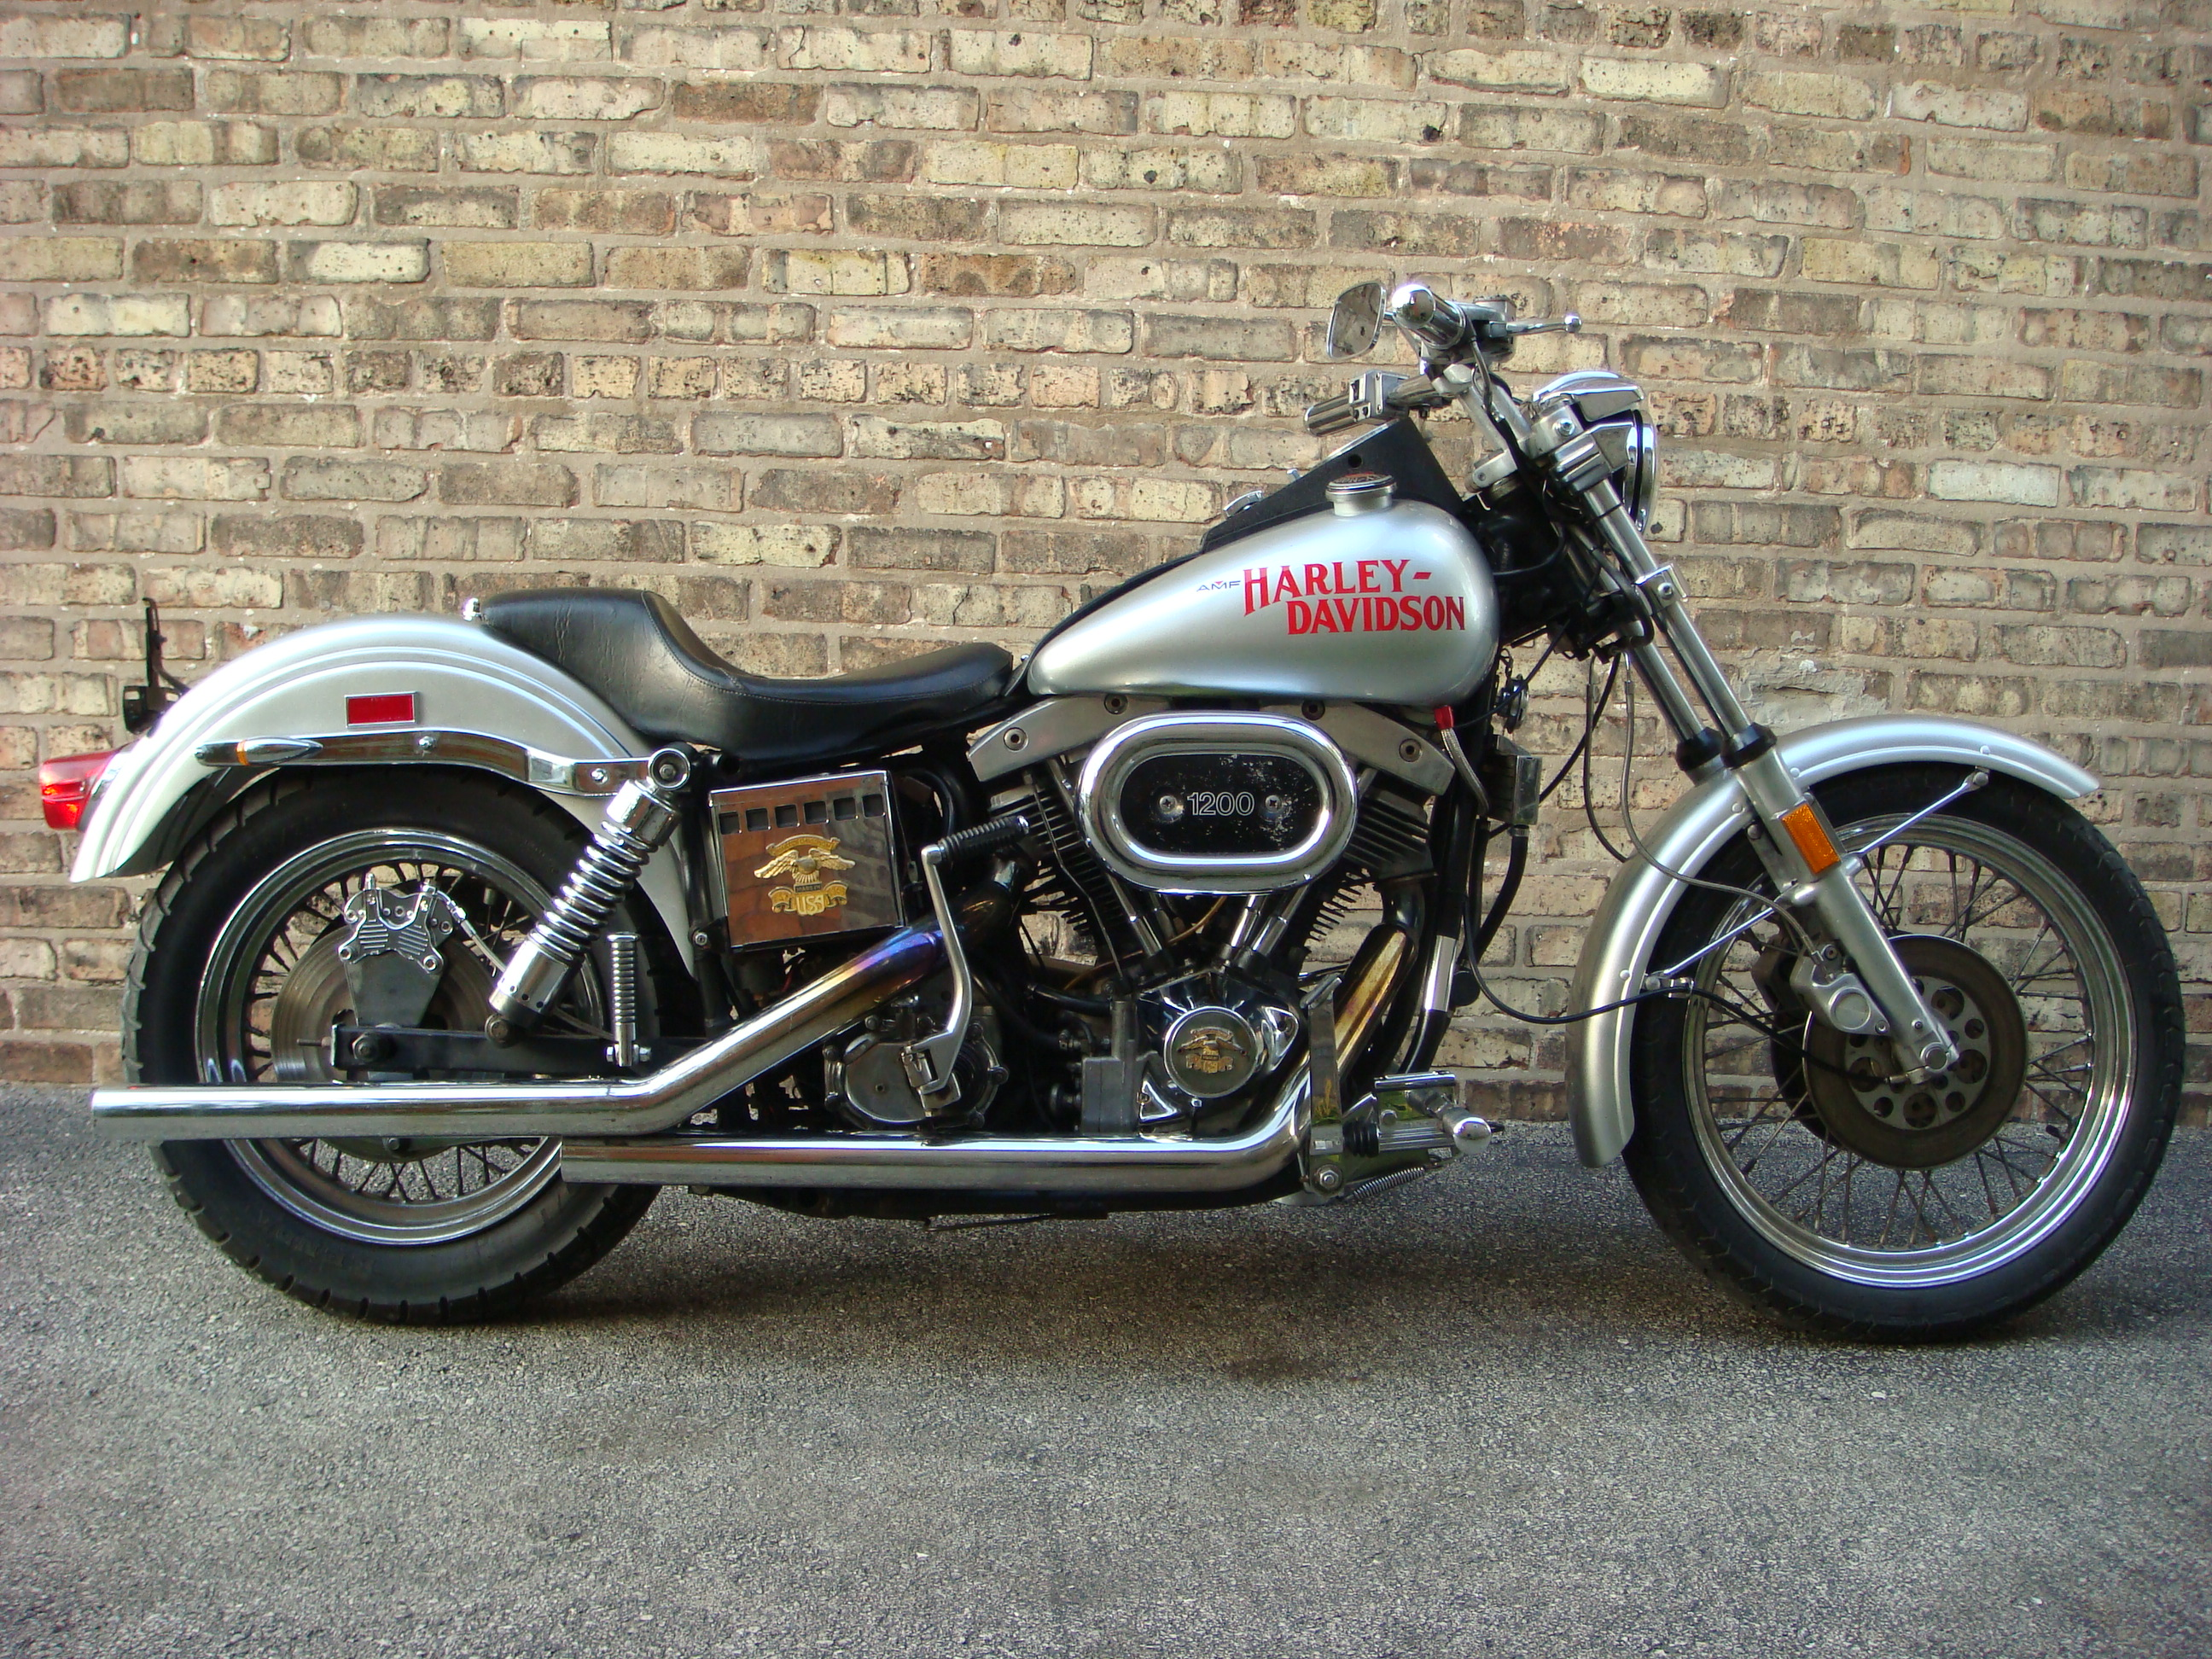 1978 Harley-Davidson FXS 1200 Super Glide Low Rider: pics, specs and